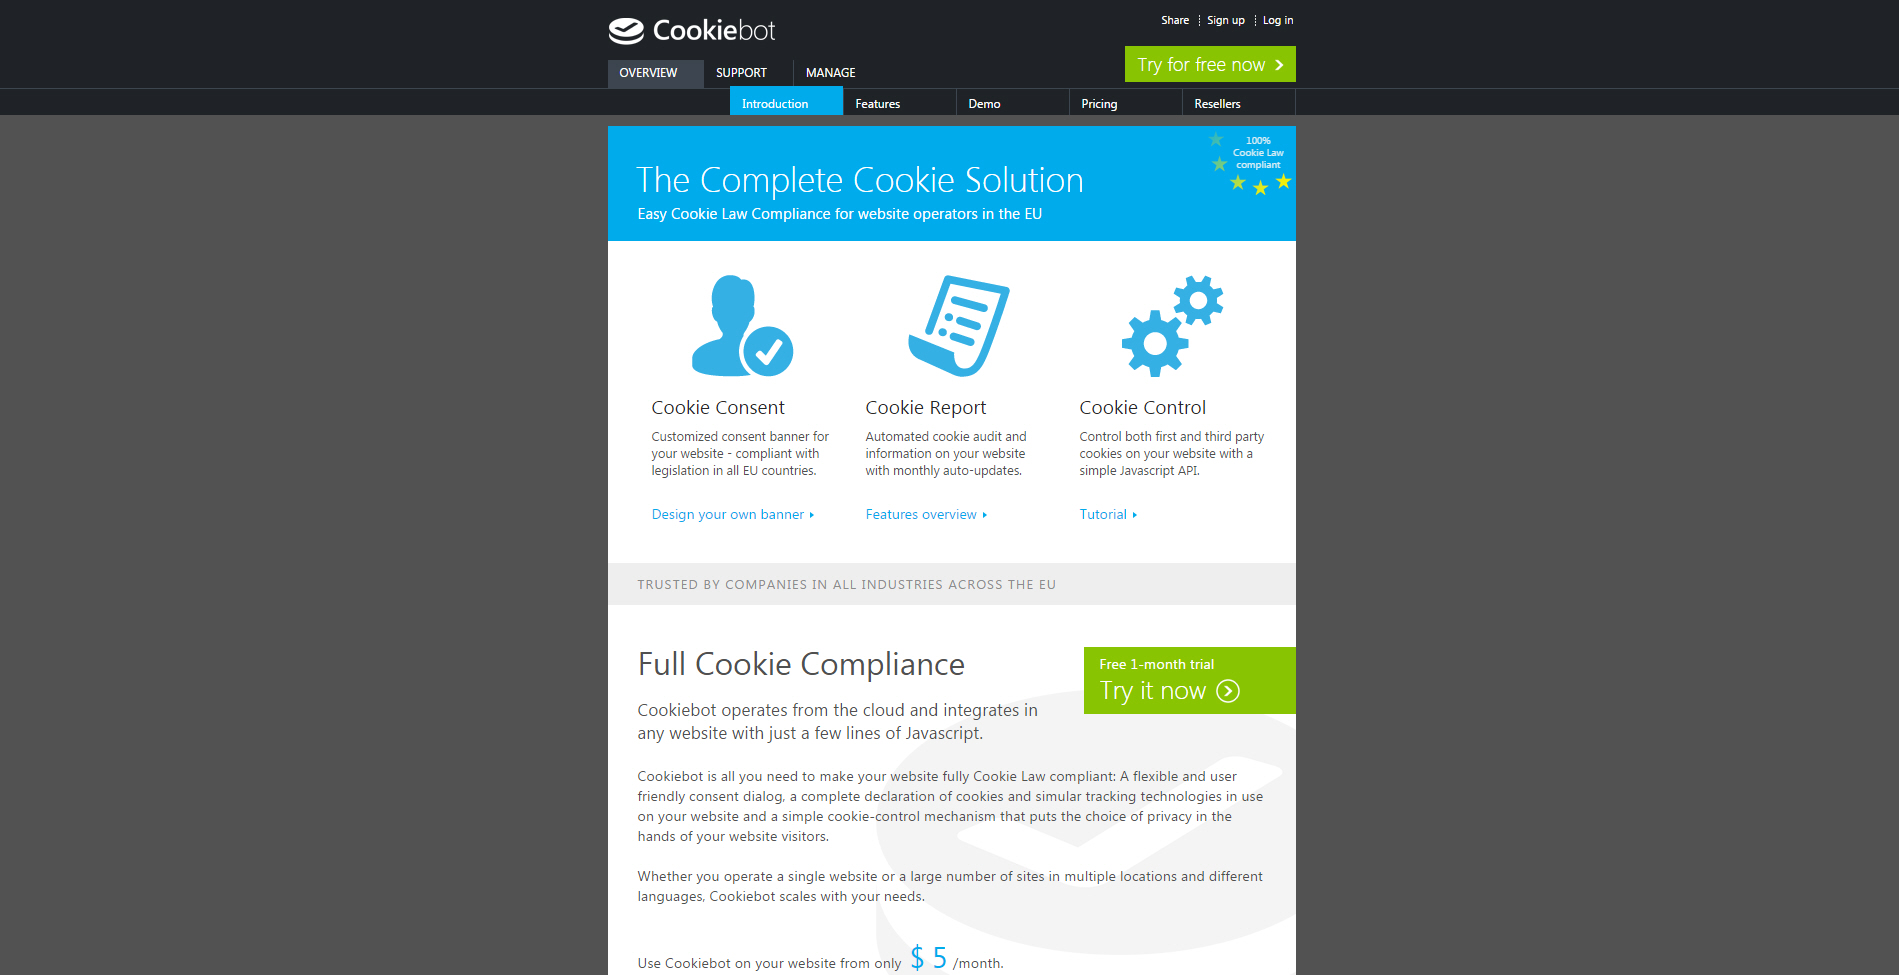 Cookiebot - full cookie compliance